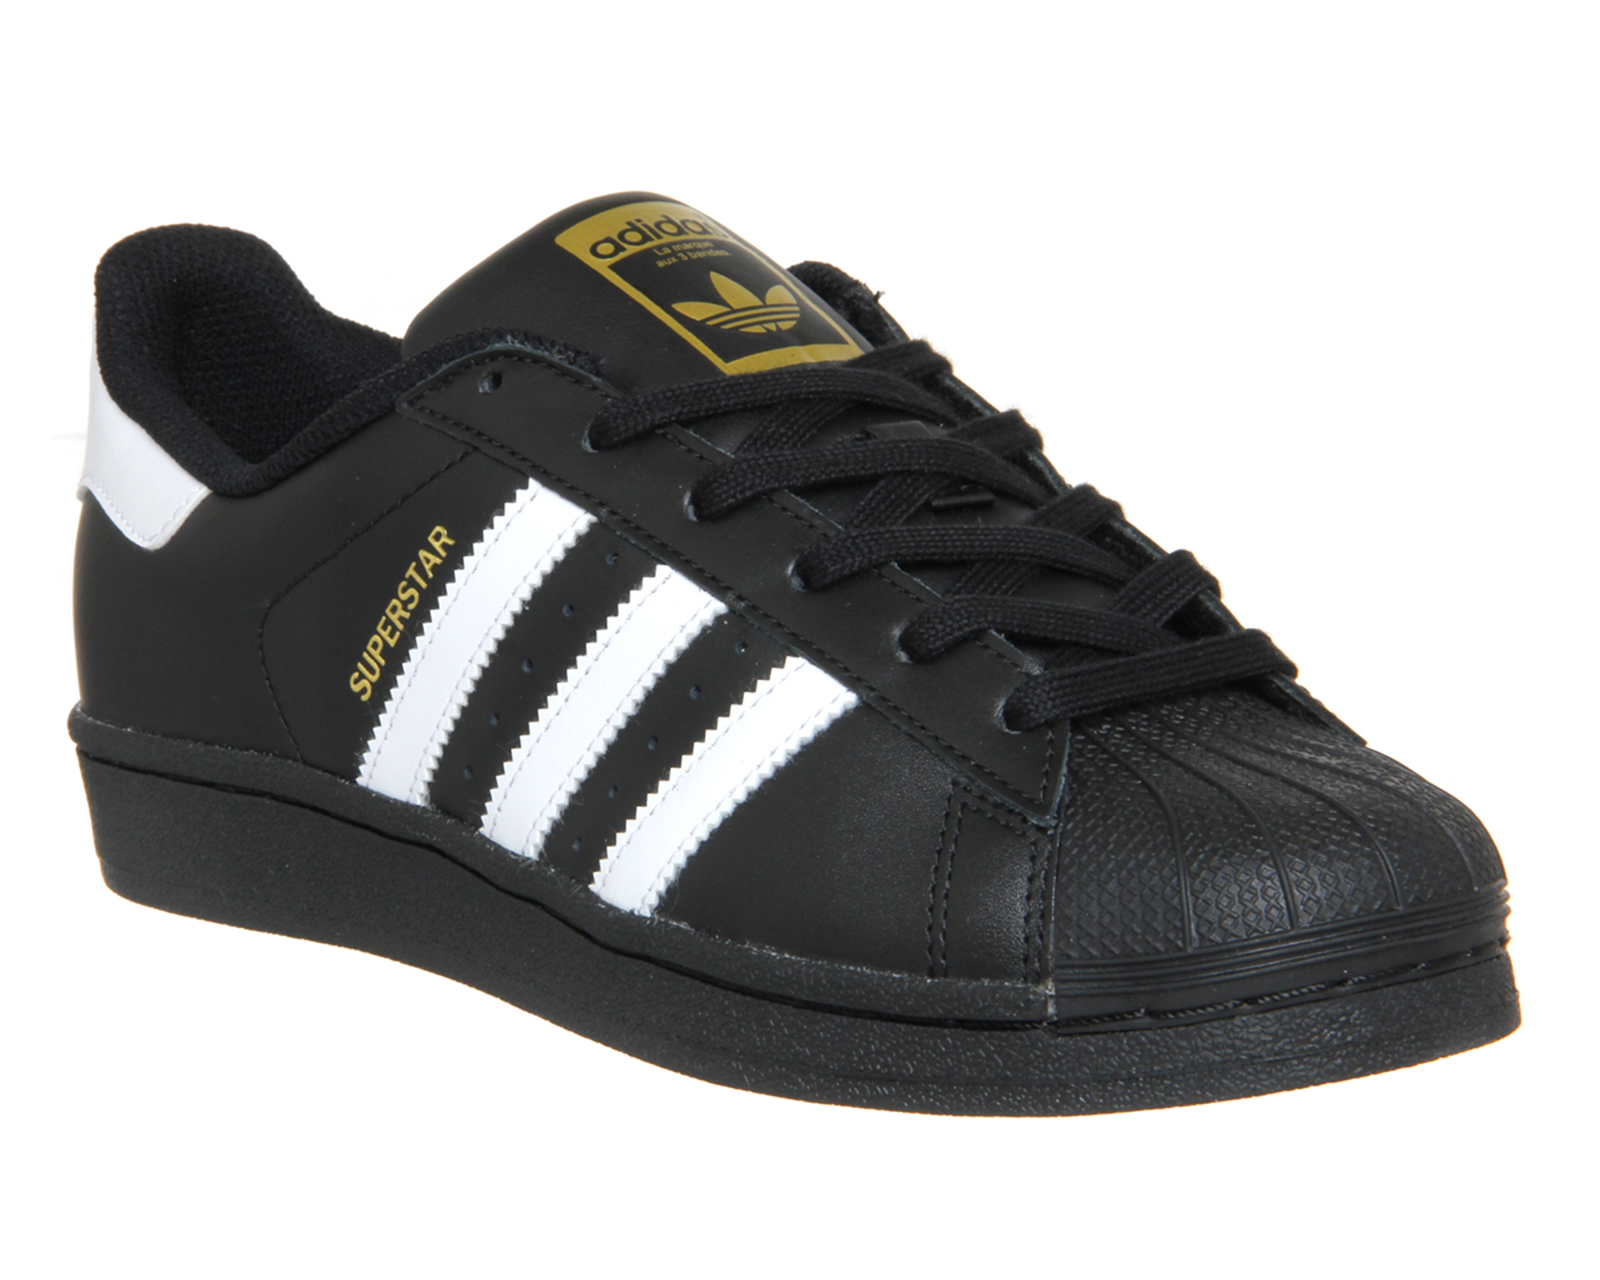 premium selection a4a22 20087 Click on the Mujer-Adidas-Superstar-Negro-Blanco-Zapatos-Entrenadores-De-  ...